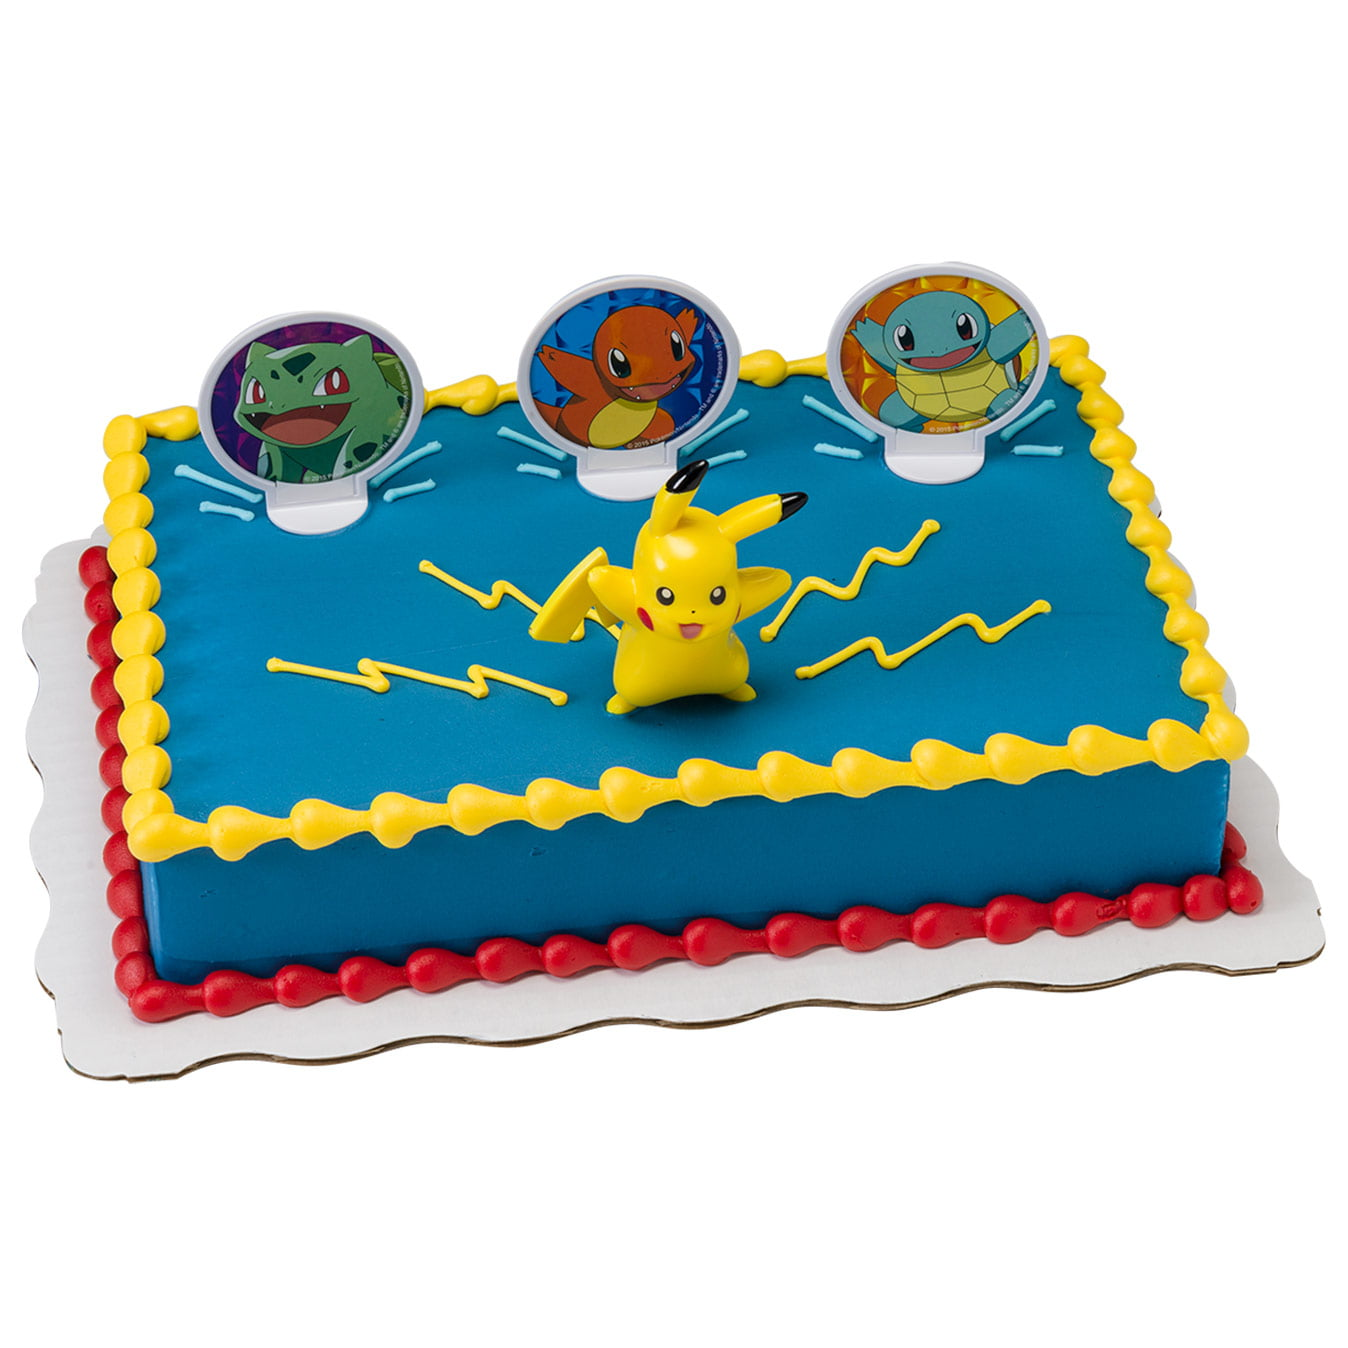 Superb Pokemon Light Up Pikachu Kit Cake Walmart Com Birthday Cards Printable Opercafe Filternl